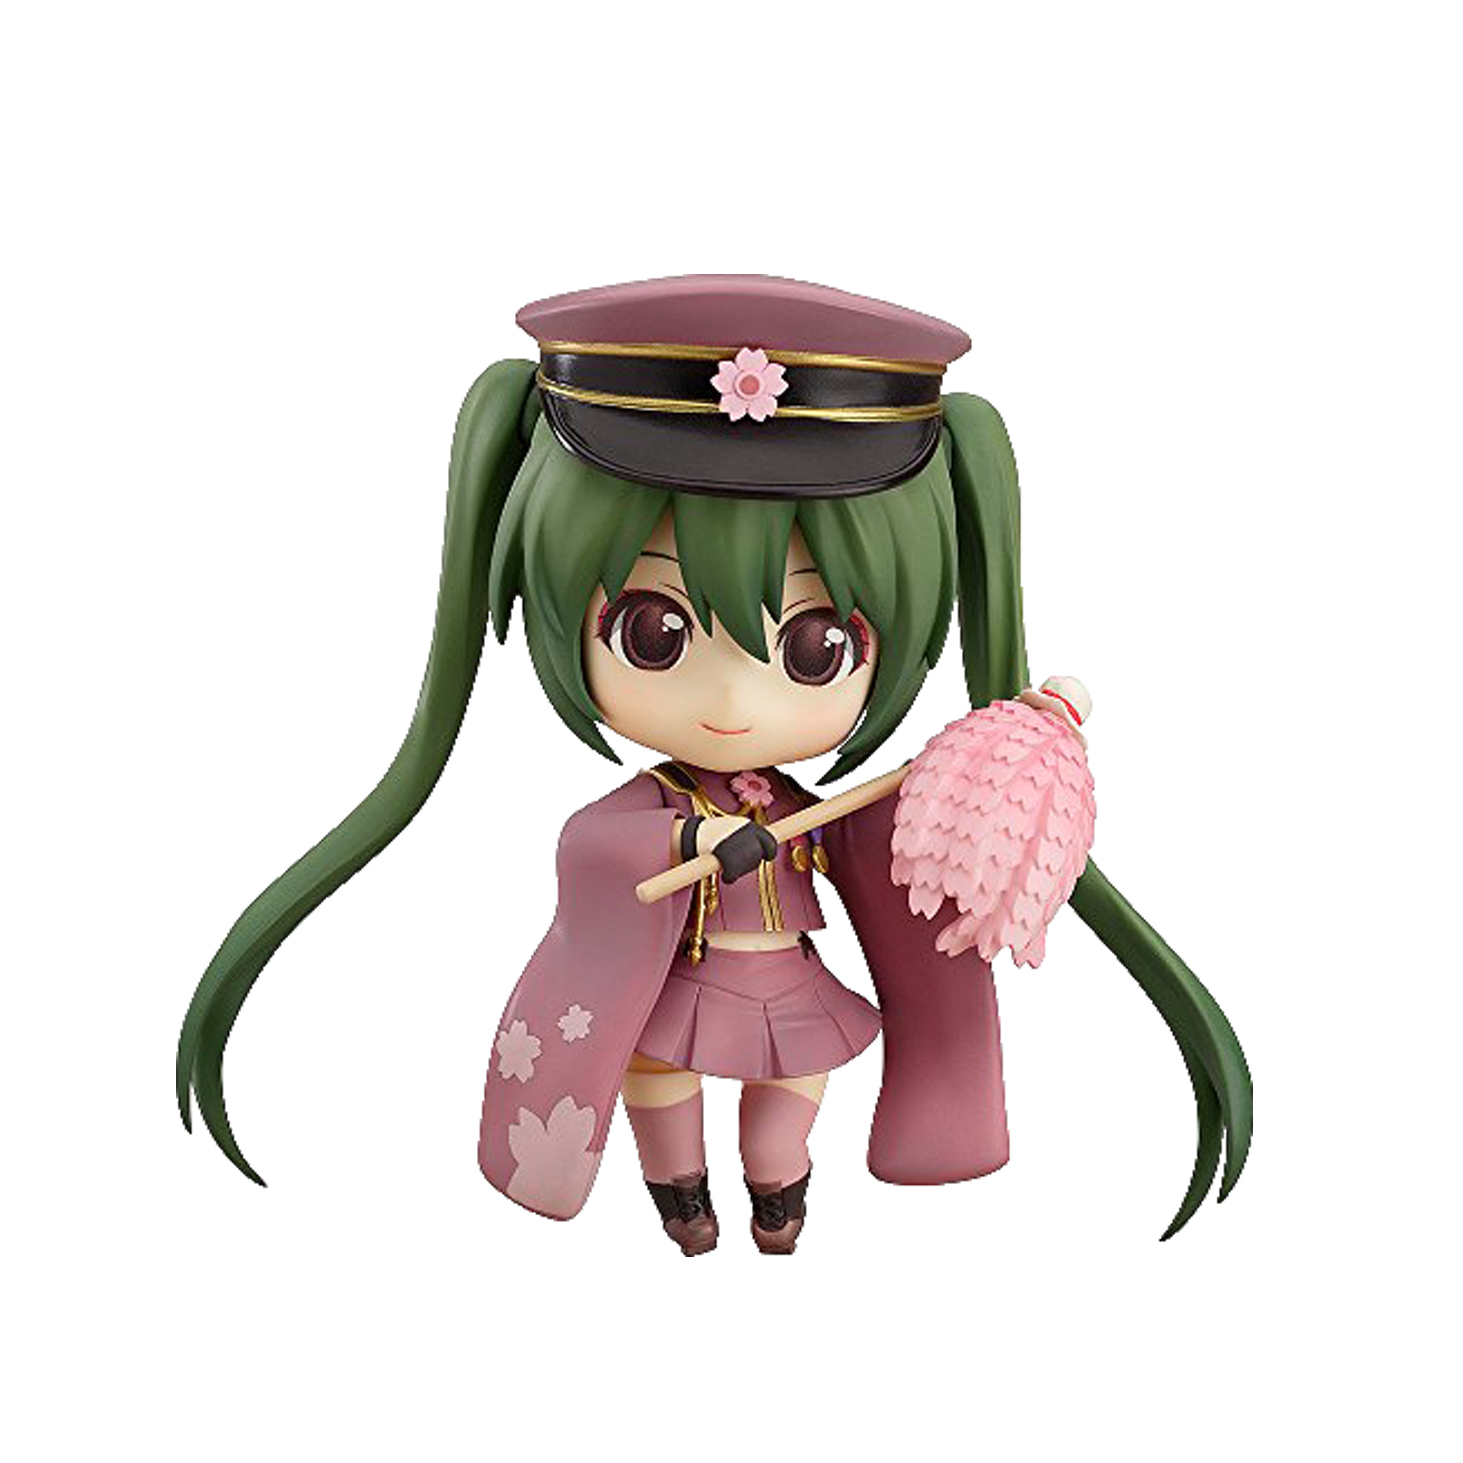 Chanycore GSC Nendoroid #480 Senbonzakura ver Hatsune Miku Sakura Miku Cherry blossoms ver PVC Action Figure Model Toy 10cm 4'' hatsune miku nendoroid black rock shooter klinge miku pvc action figure anim q version of the 3 educational toys